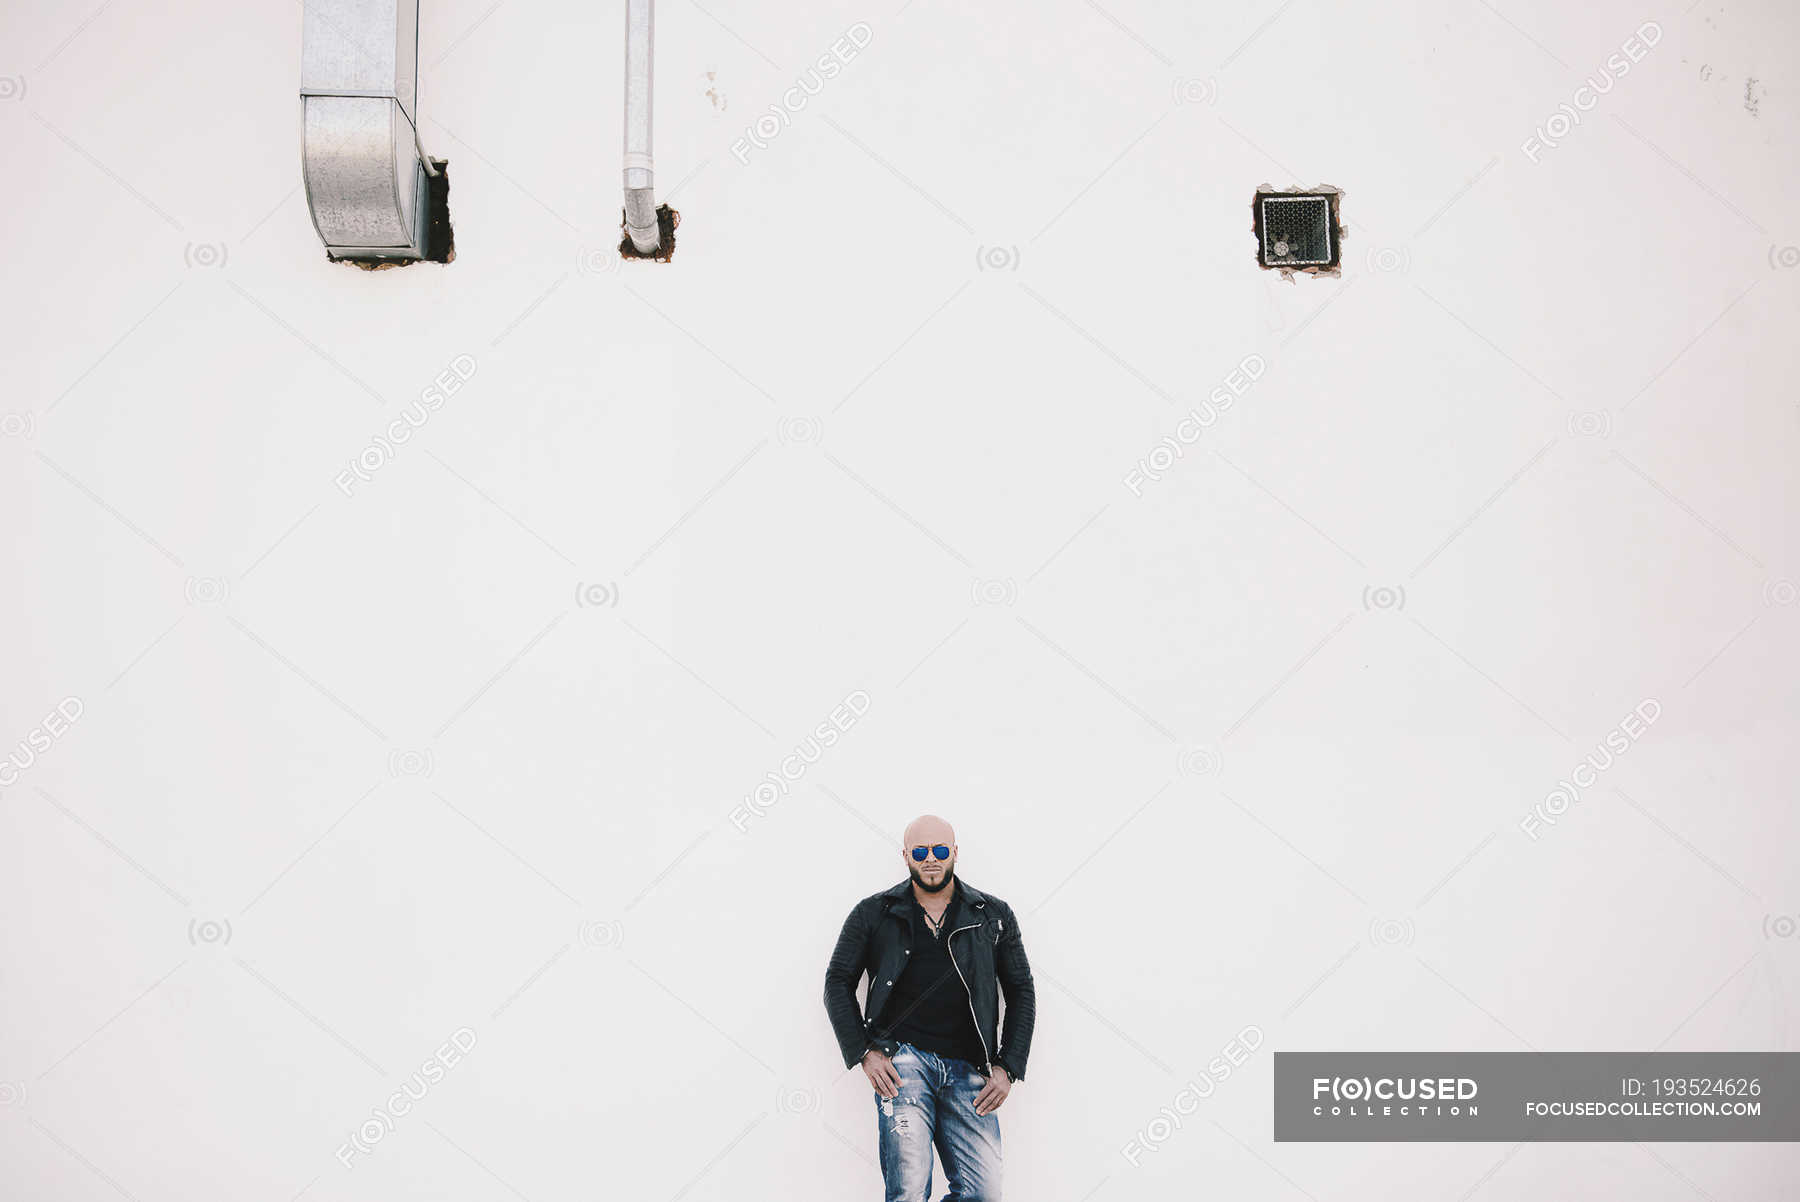 Cool Man Standing In Front Of White Wall Masculinity Striding Stock Photo 193524626